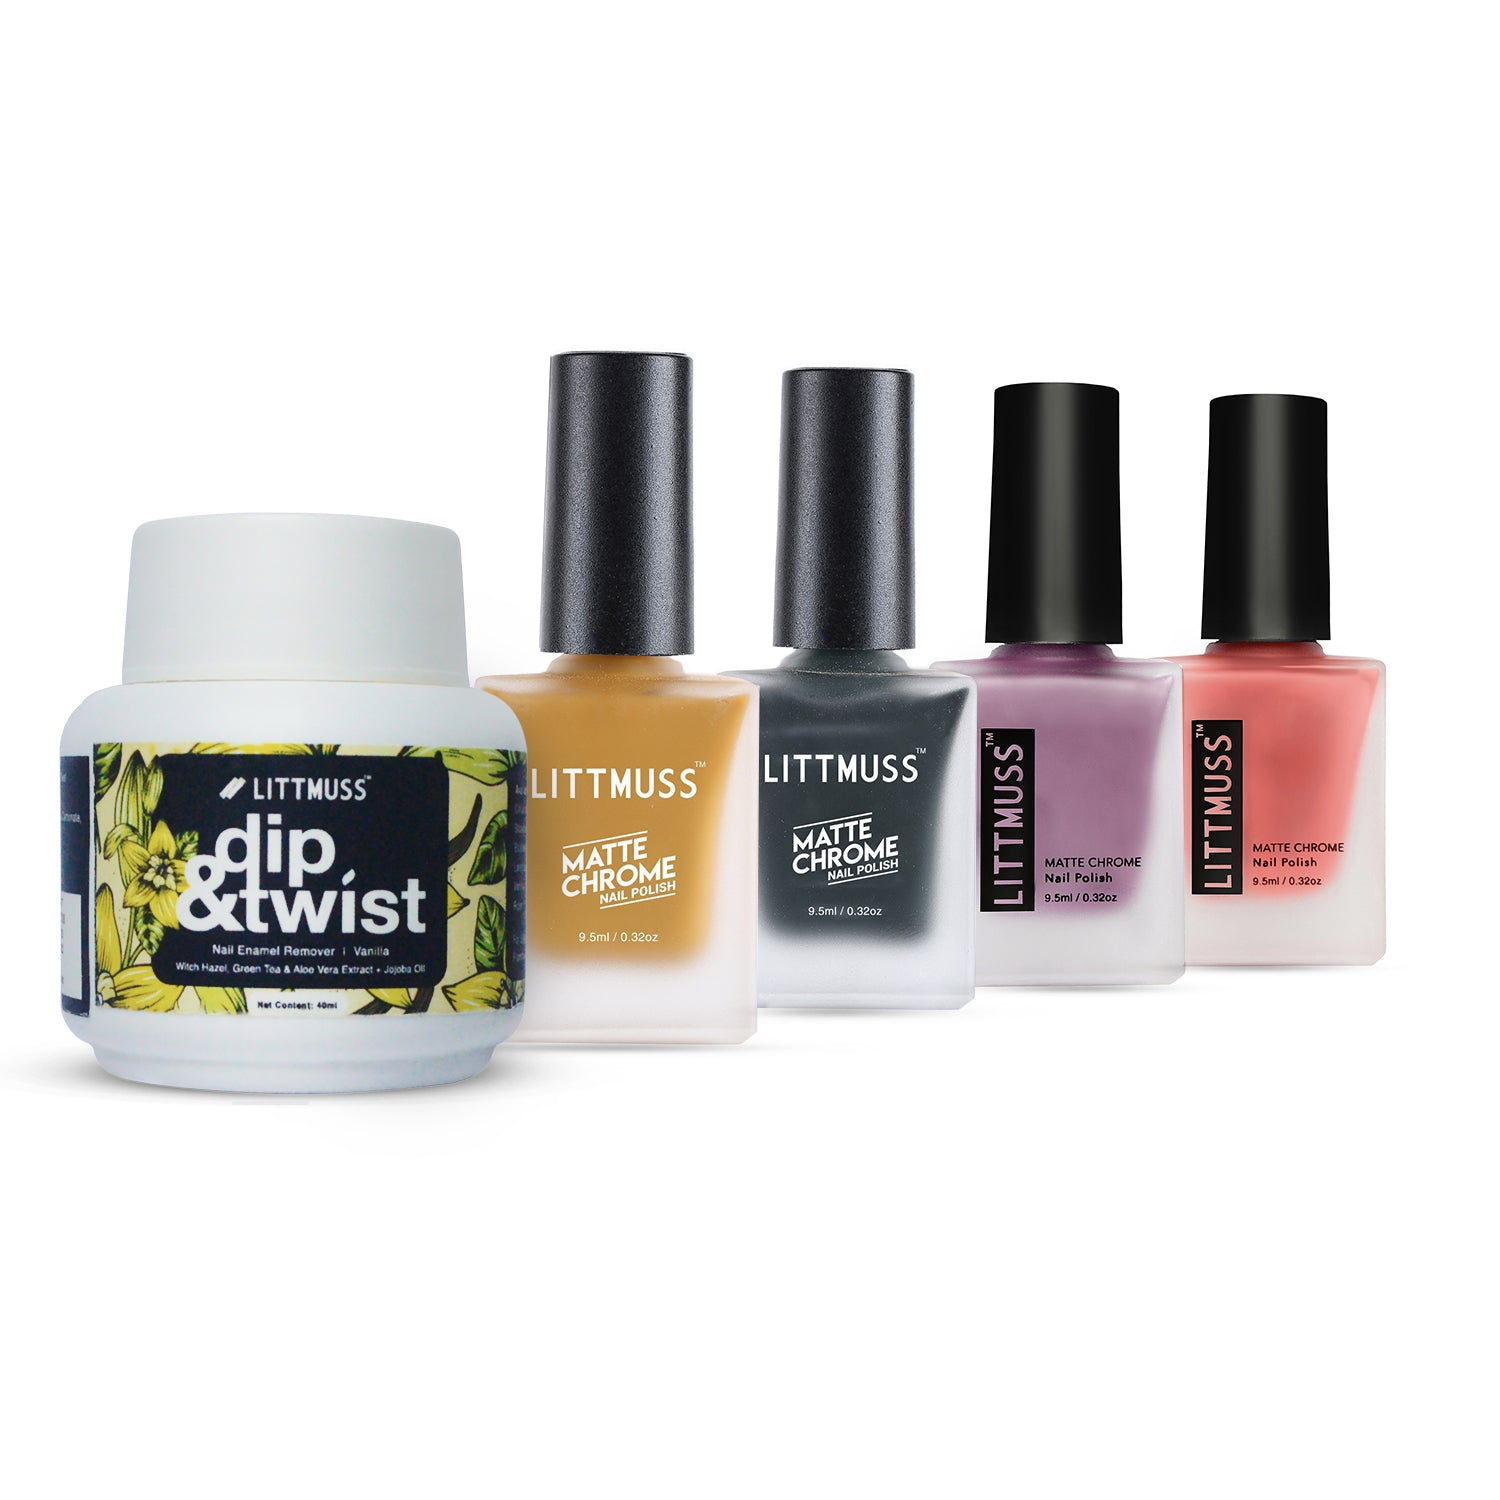 LITTMUSS Nail Polish & Remover Match Your Outfit Combo